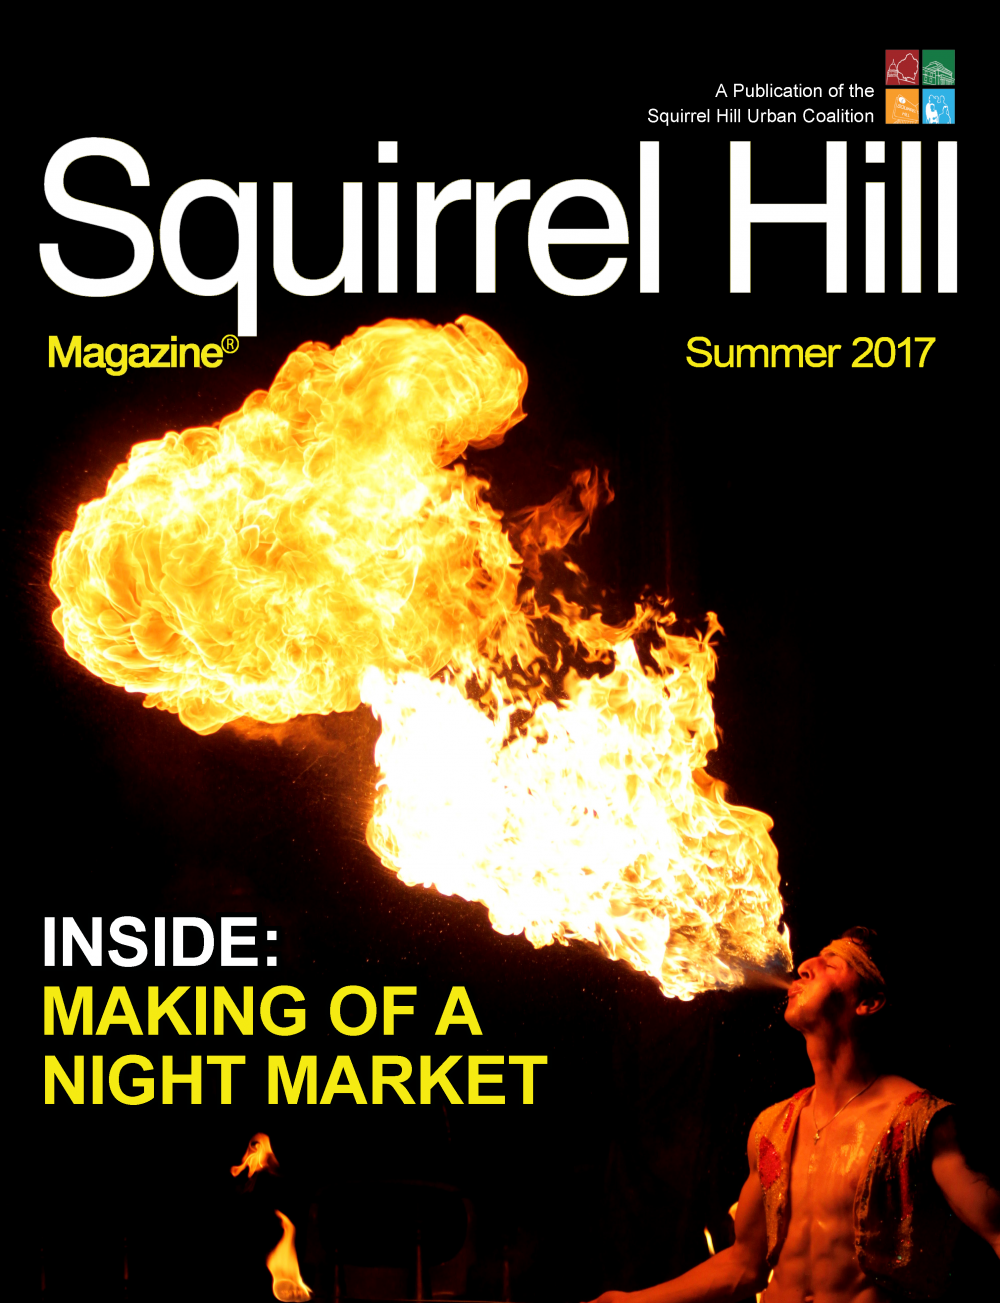 Squirrel Hill Magazine Summer 2017